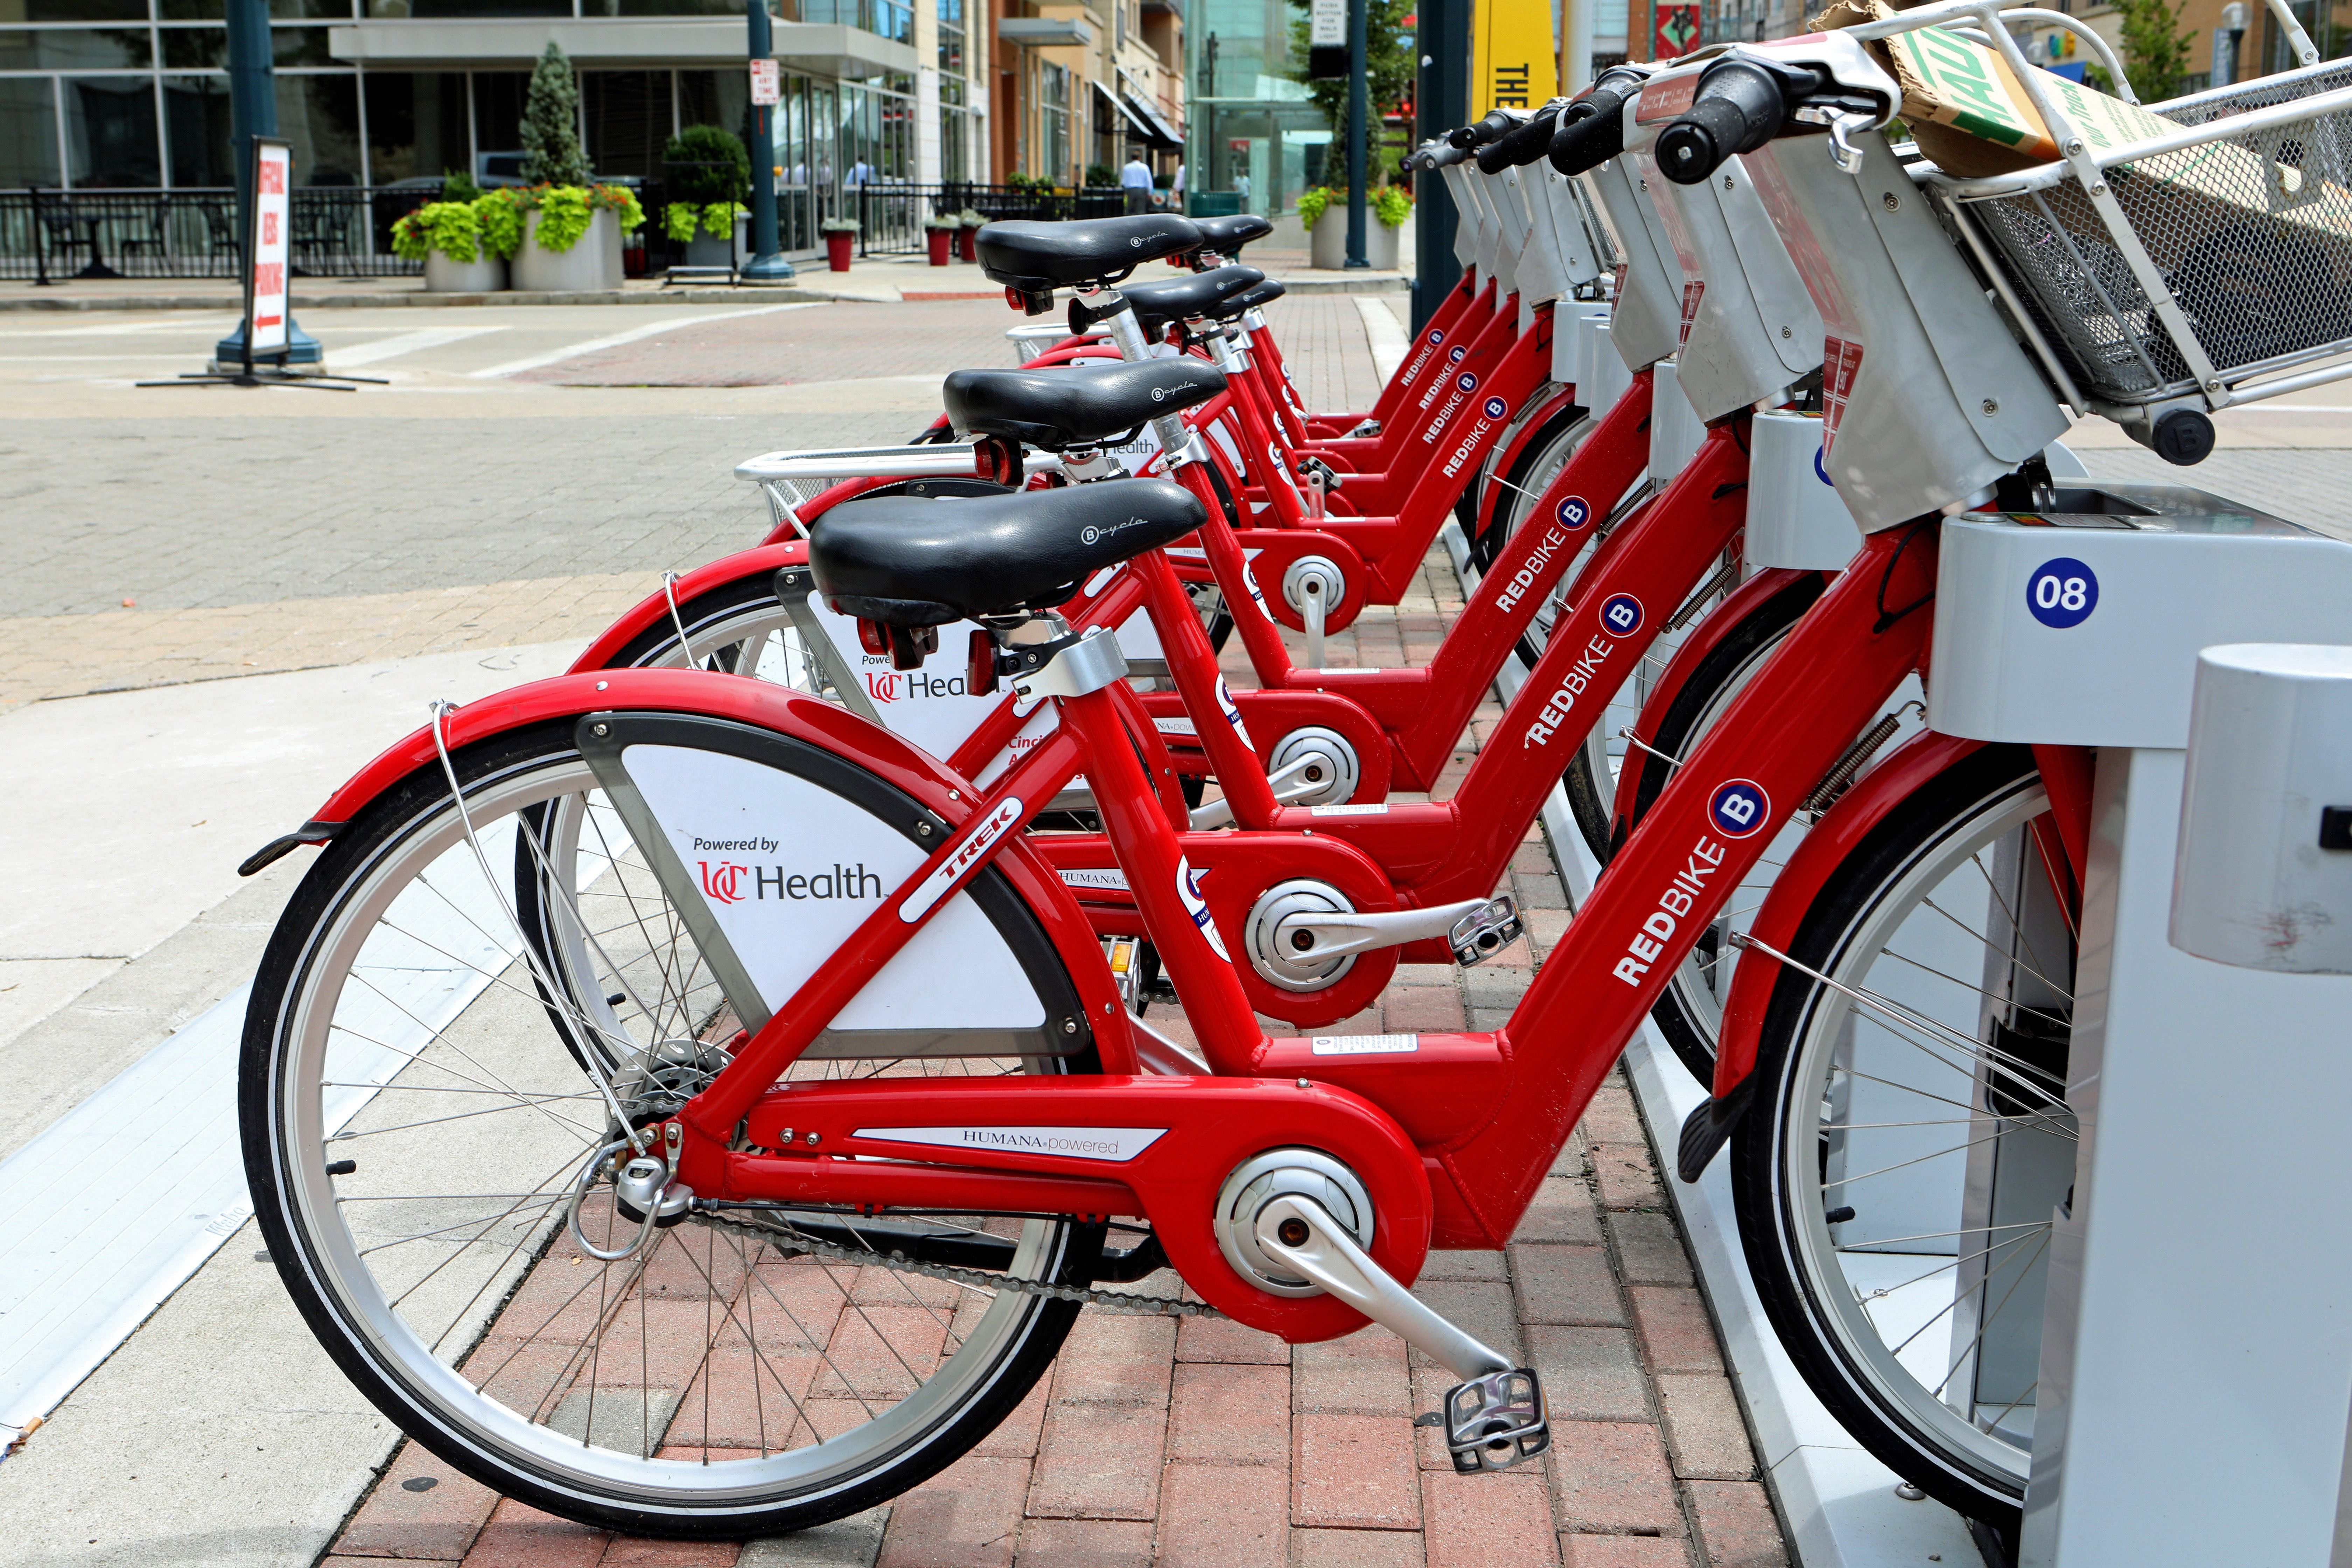 The Cincinnati Red Bikes service offers an economical way to see the city.